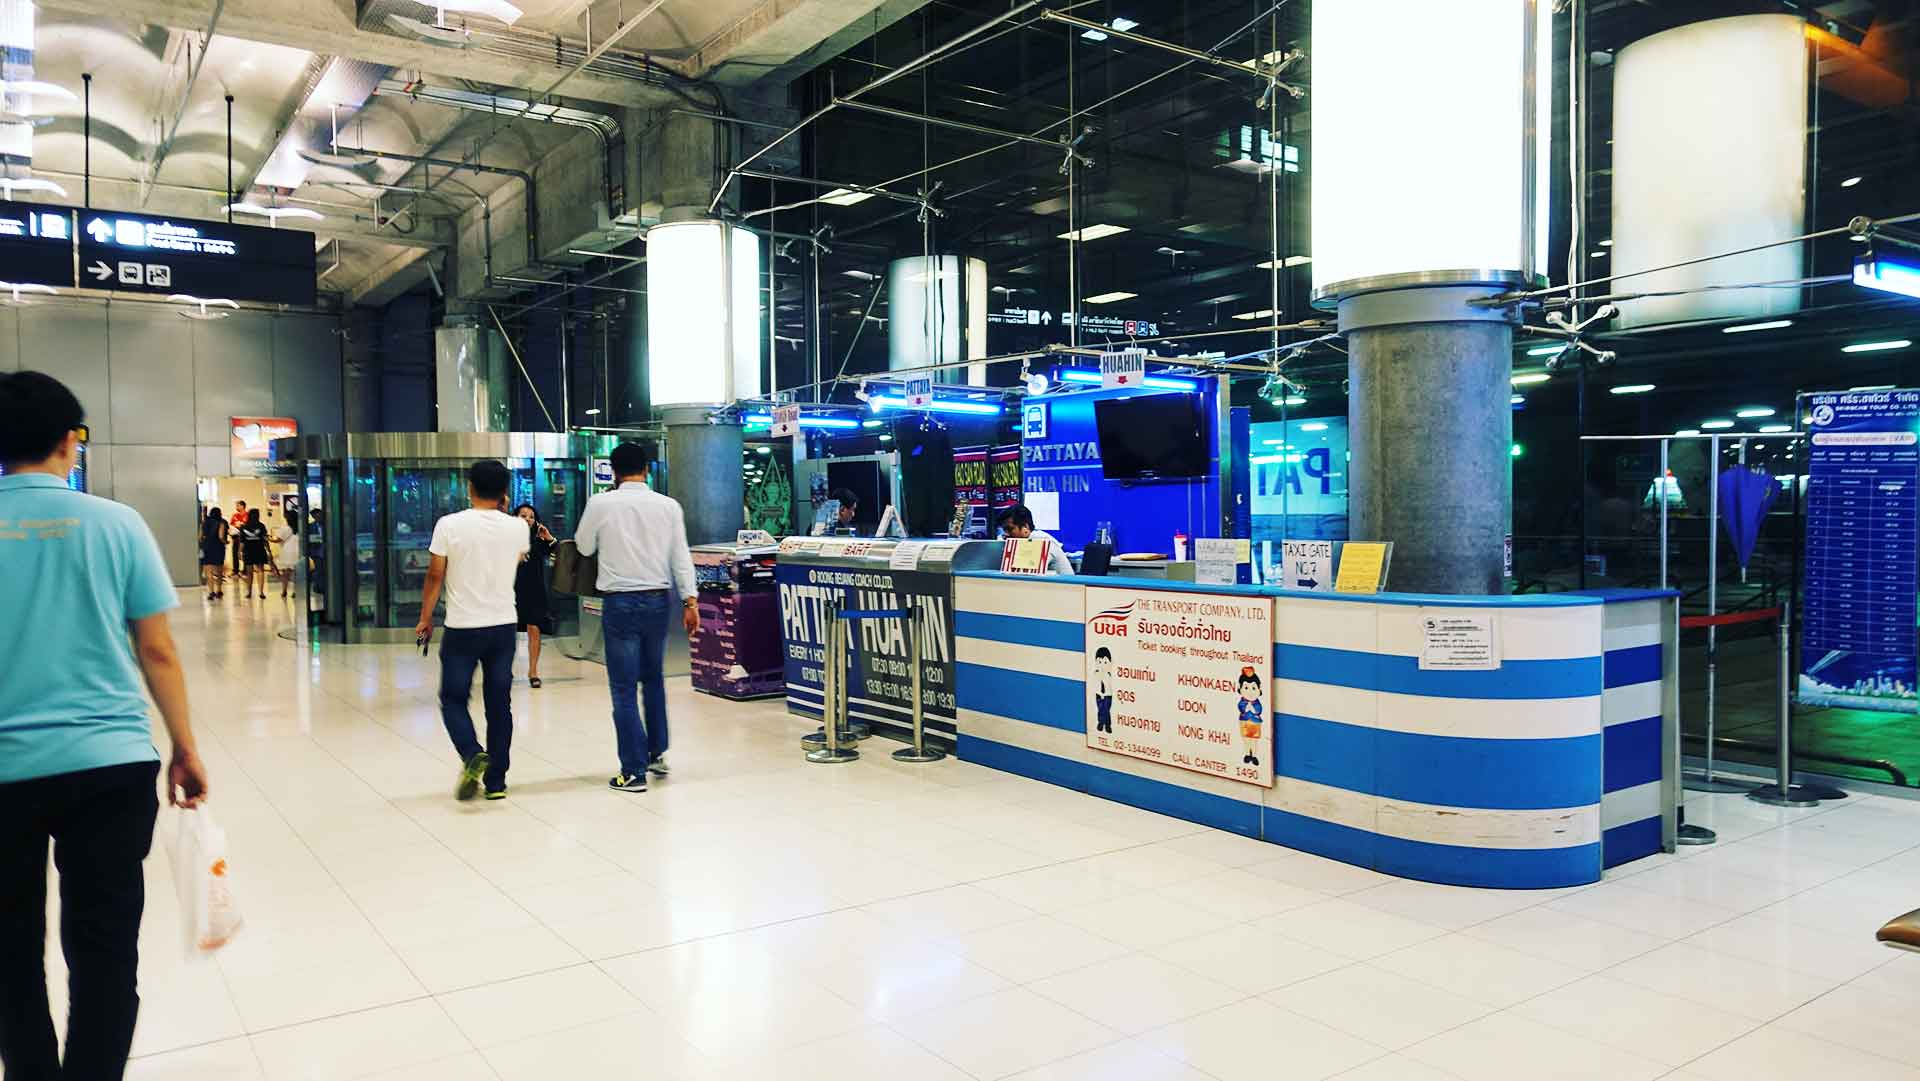 How to Get to Pattaya from Suvarnabhumi Airport for 120 Baht - Buy a Bus Ticket at the Kiosk by Door 8 on Level 1 - Thailand